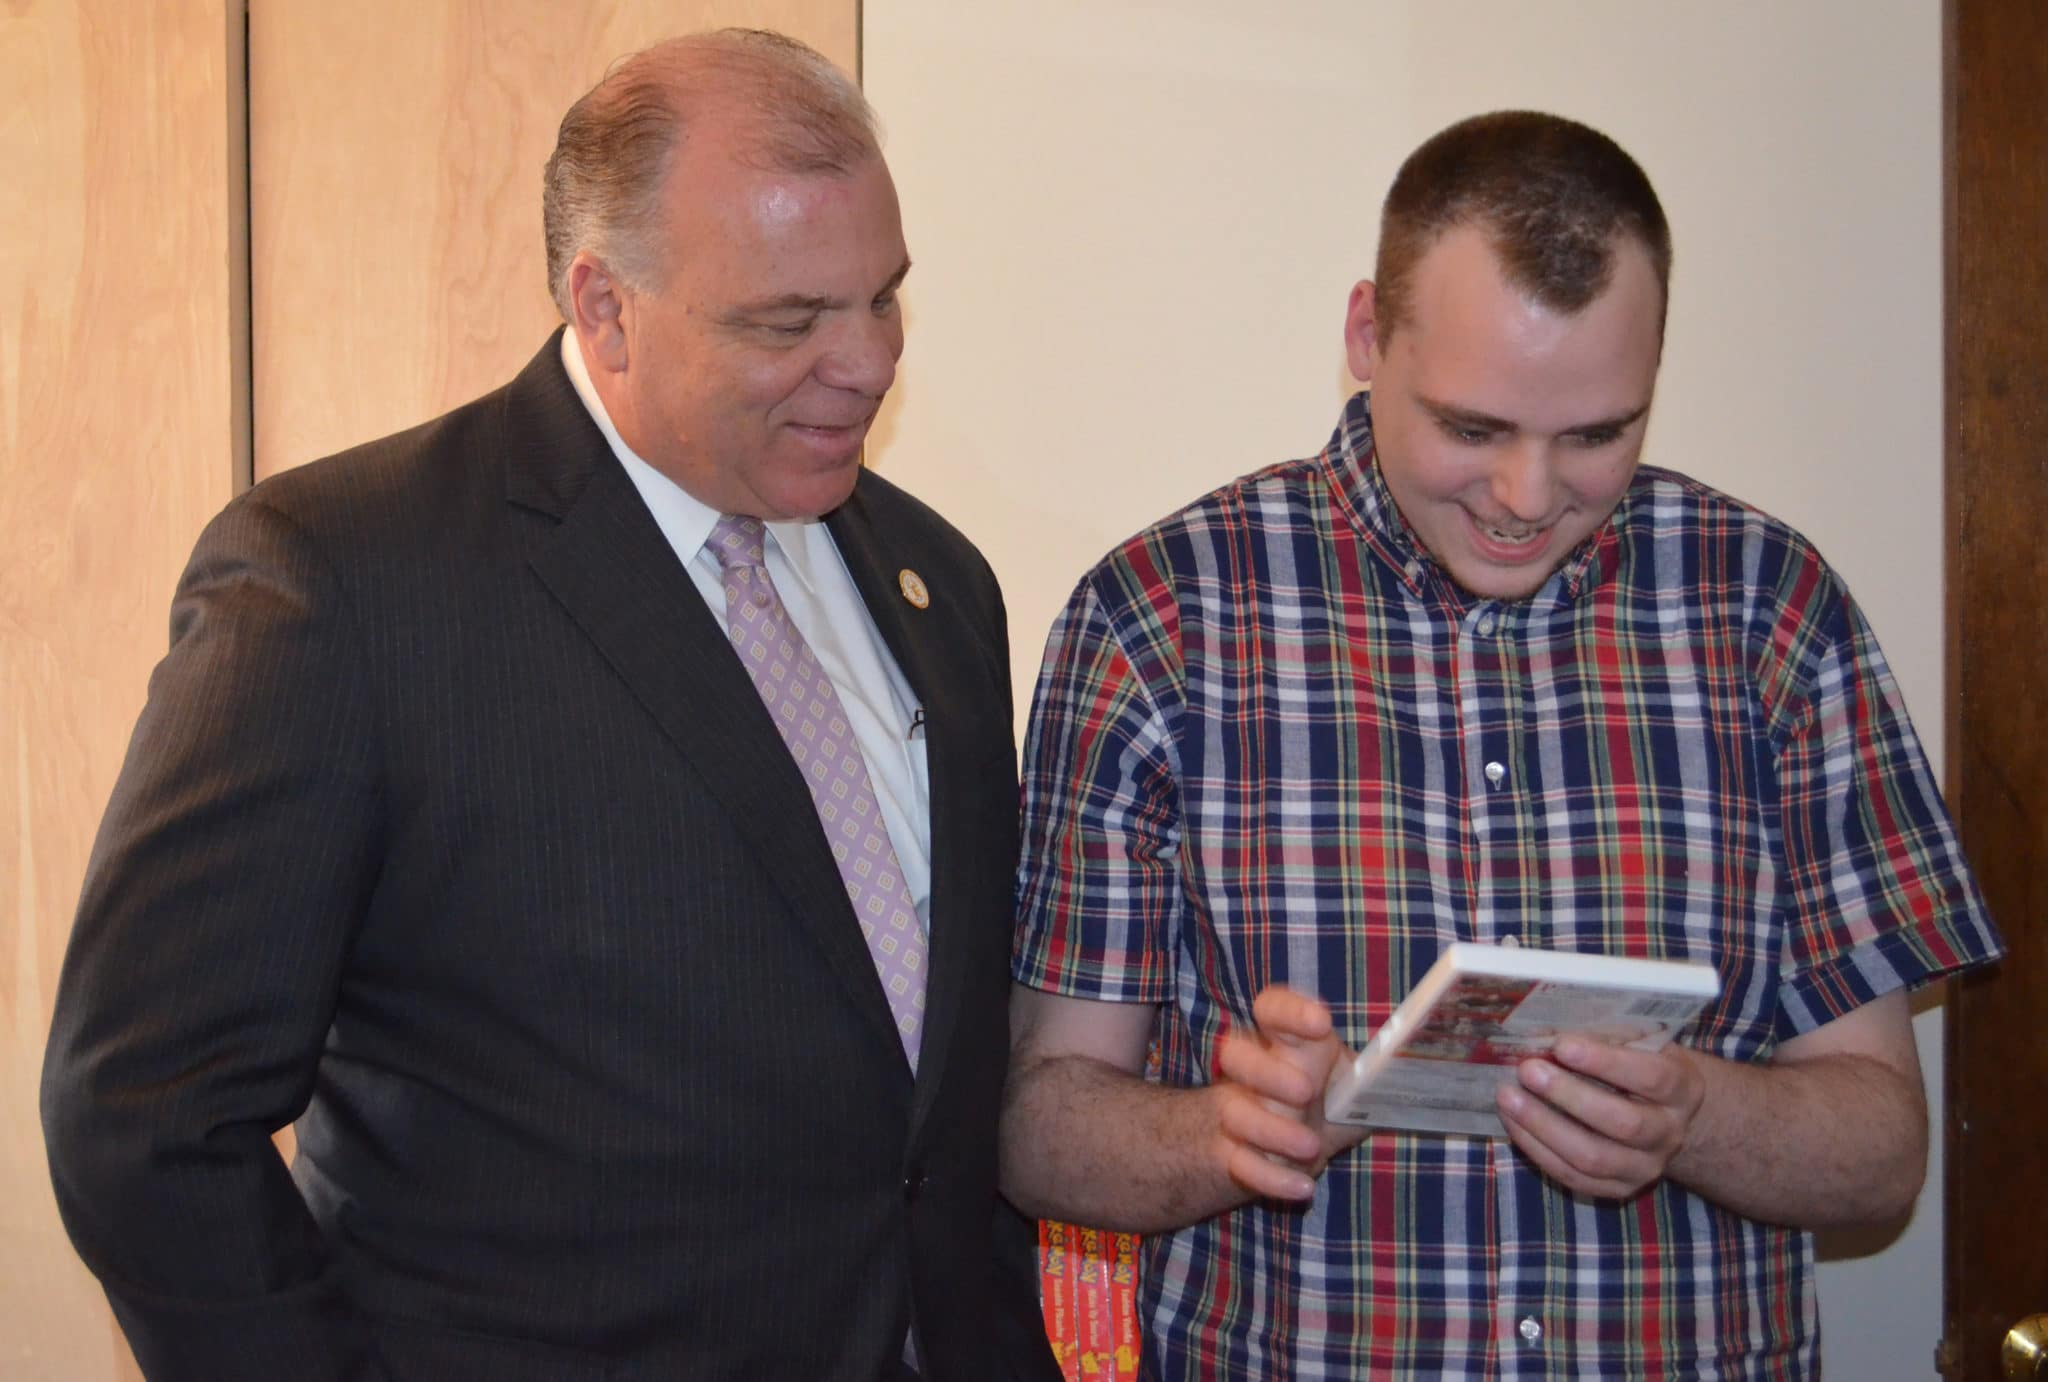 Third District Senator Stephen Sweeney To Visit Group Homes In Millville